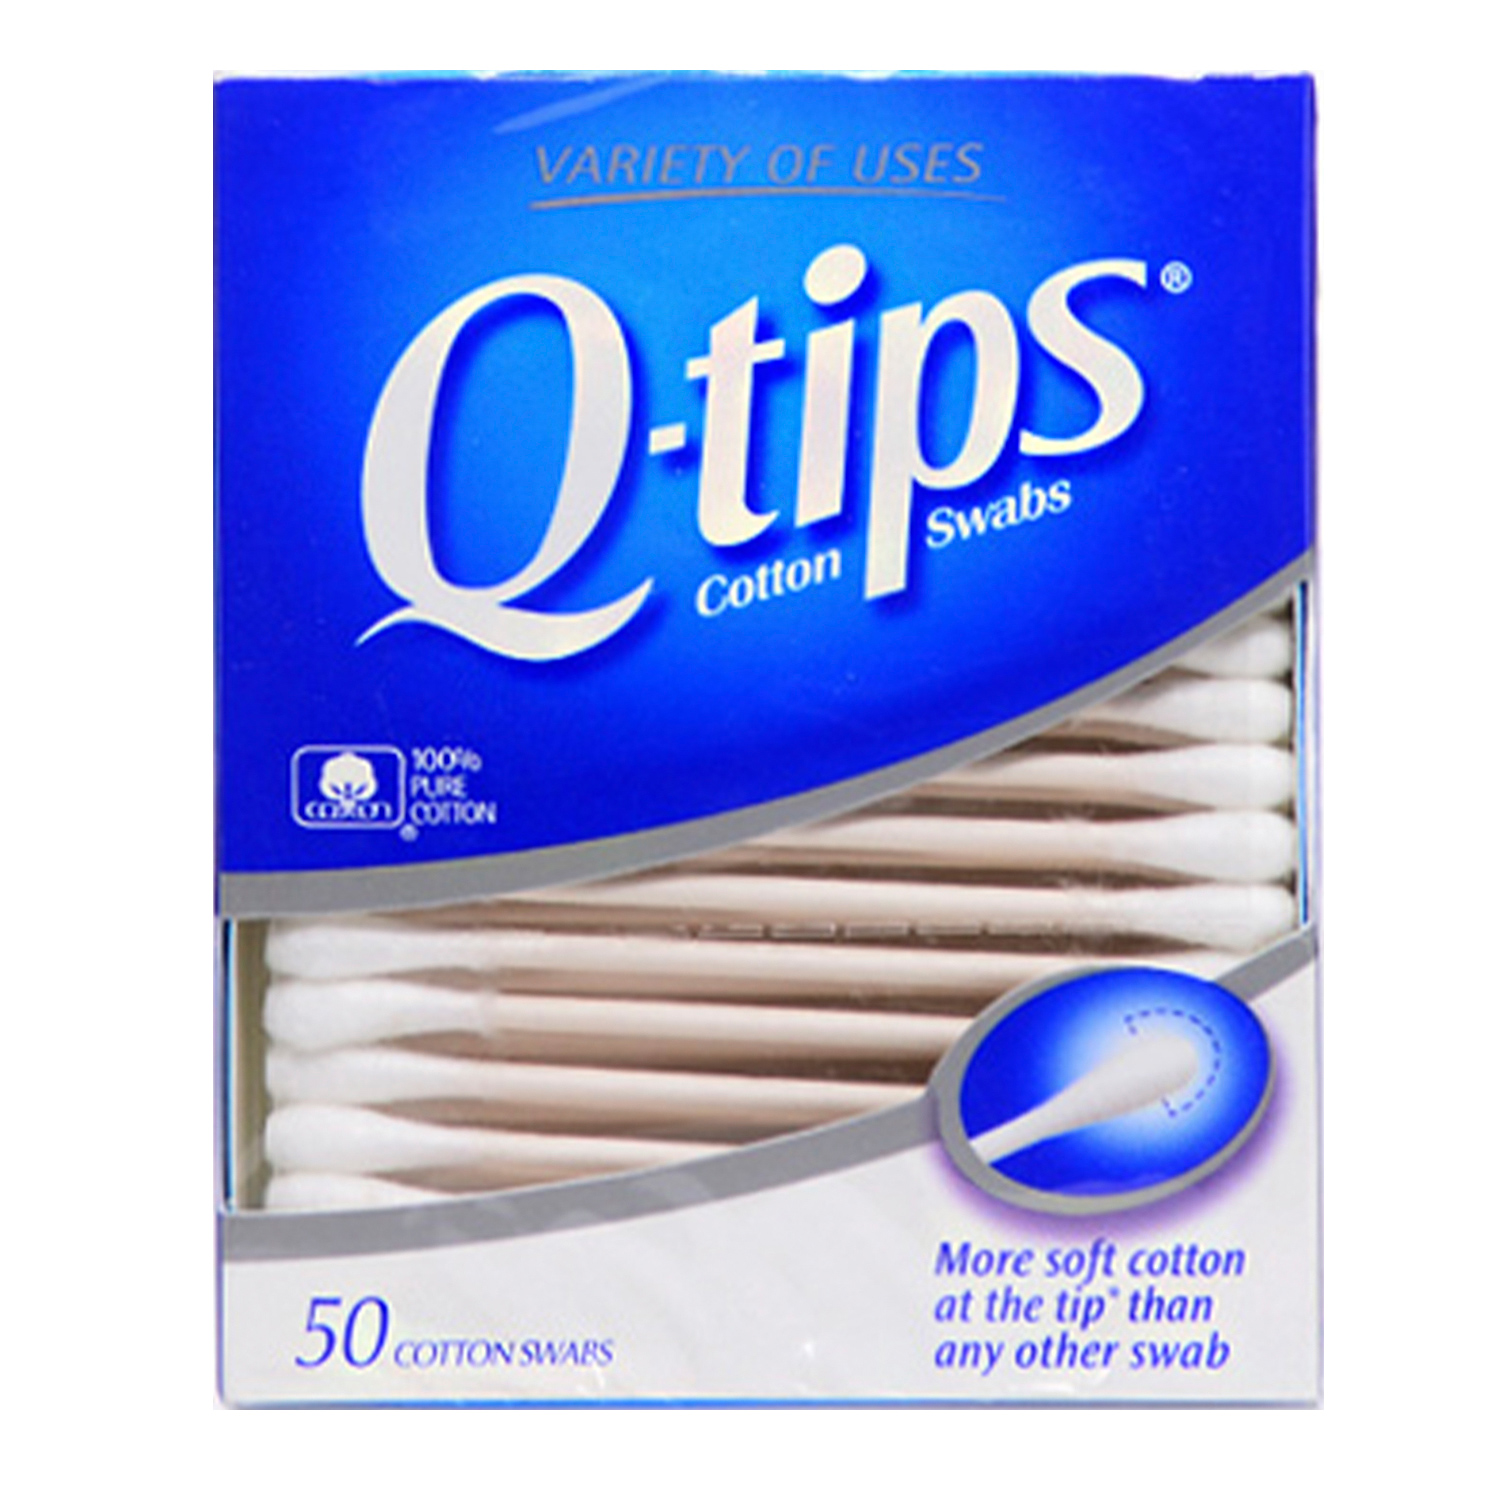 Q-tips 50 Cotton Swabs - iKateHouse